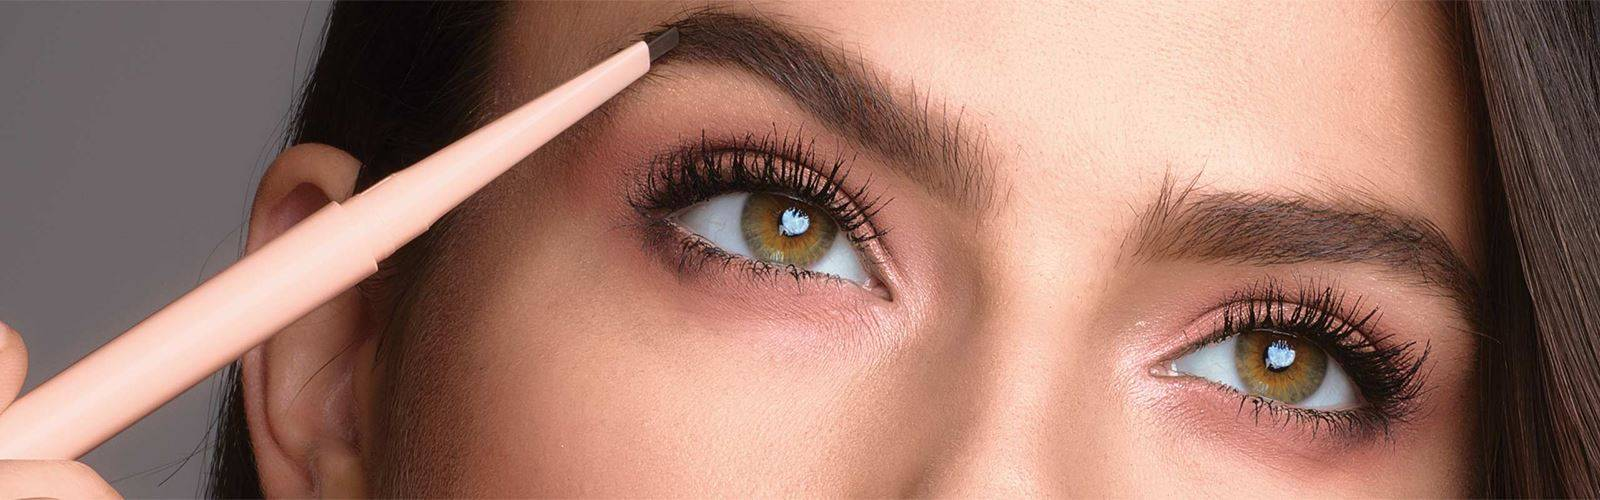 total-temptation-eyebrow-definer-pencil_featuredproductwide